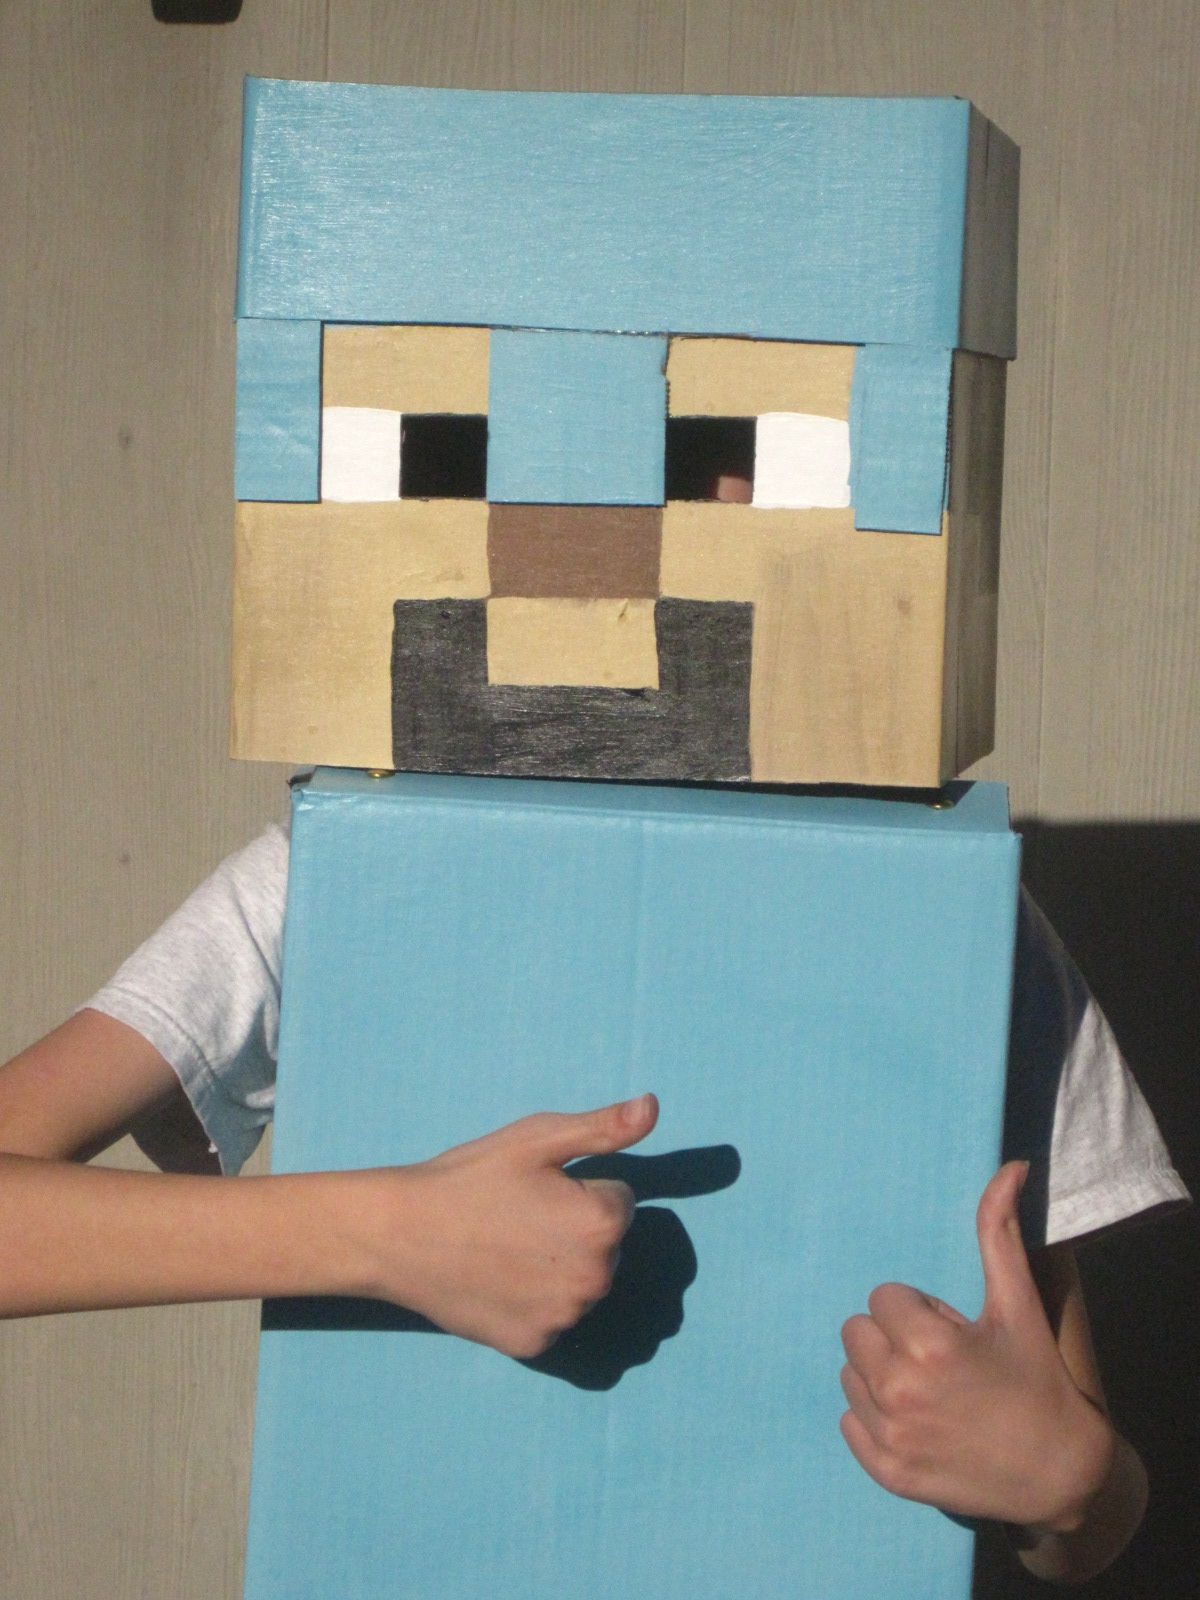 & Little House In Colorado: Minecraft Halloween Costume